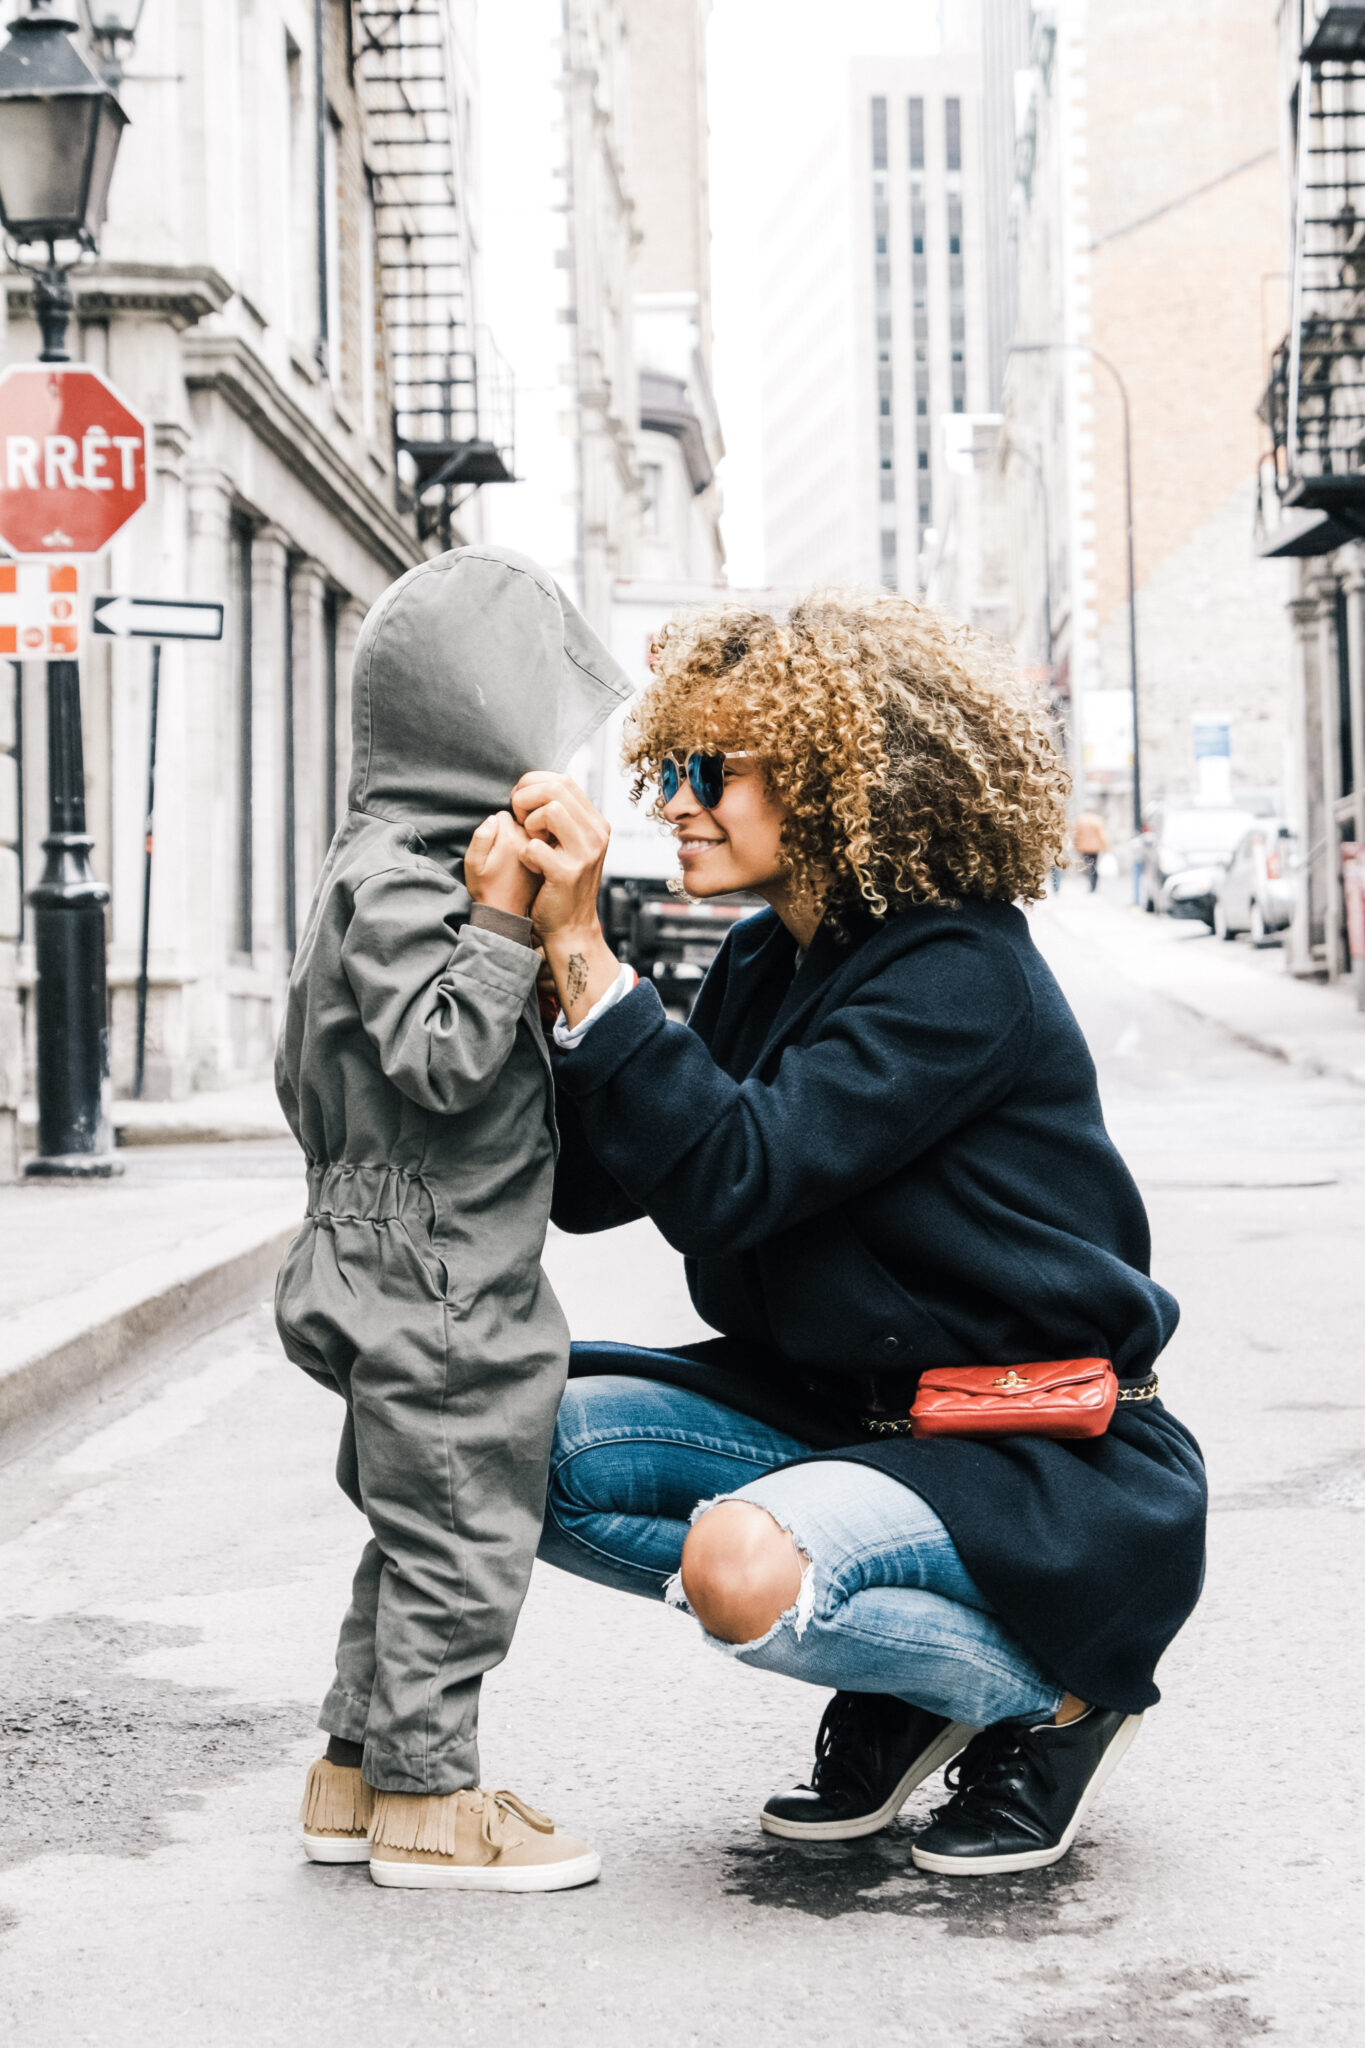 Woman kneels down to the same height as her son and smiles. This article covers 4 vital skills every parent should teach their child.